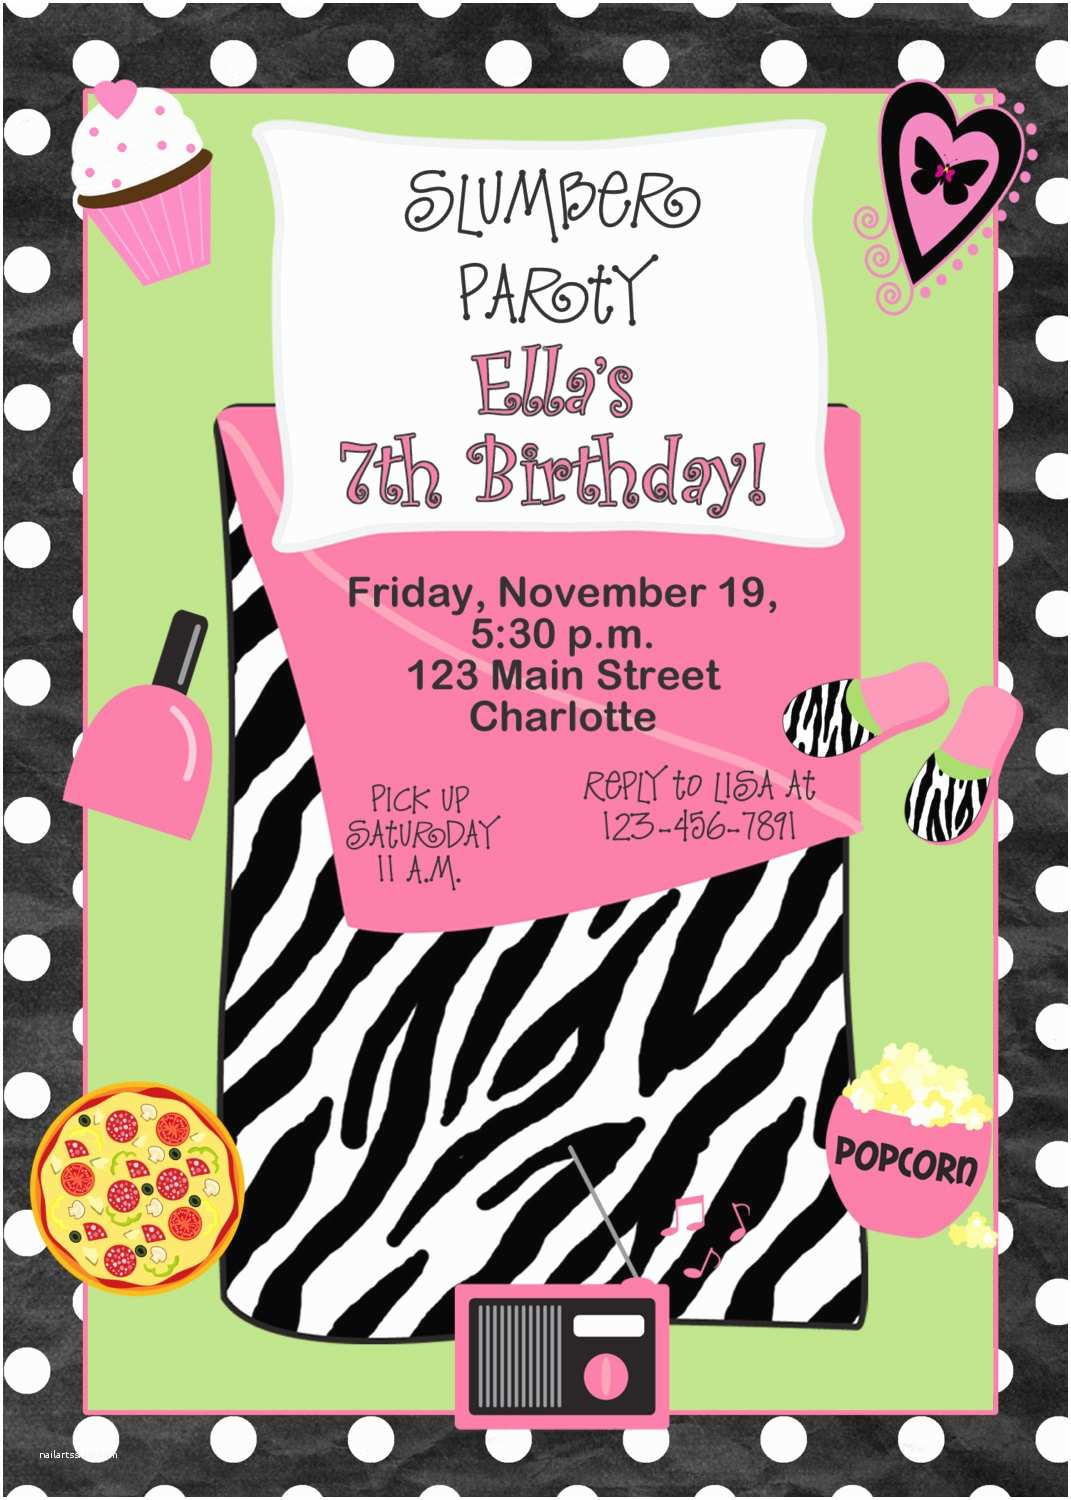 Slumber Party Invitations Slumber Party Birthday Invitation Pajama by thebutterflypress